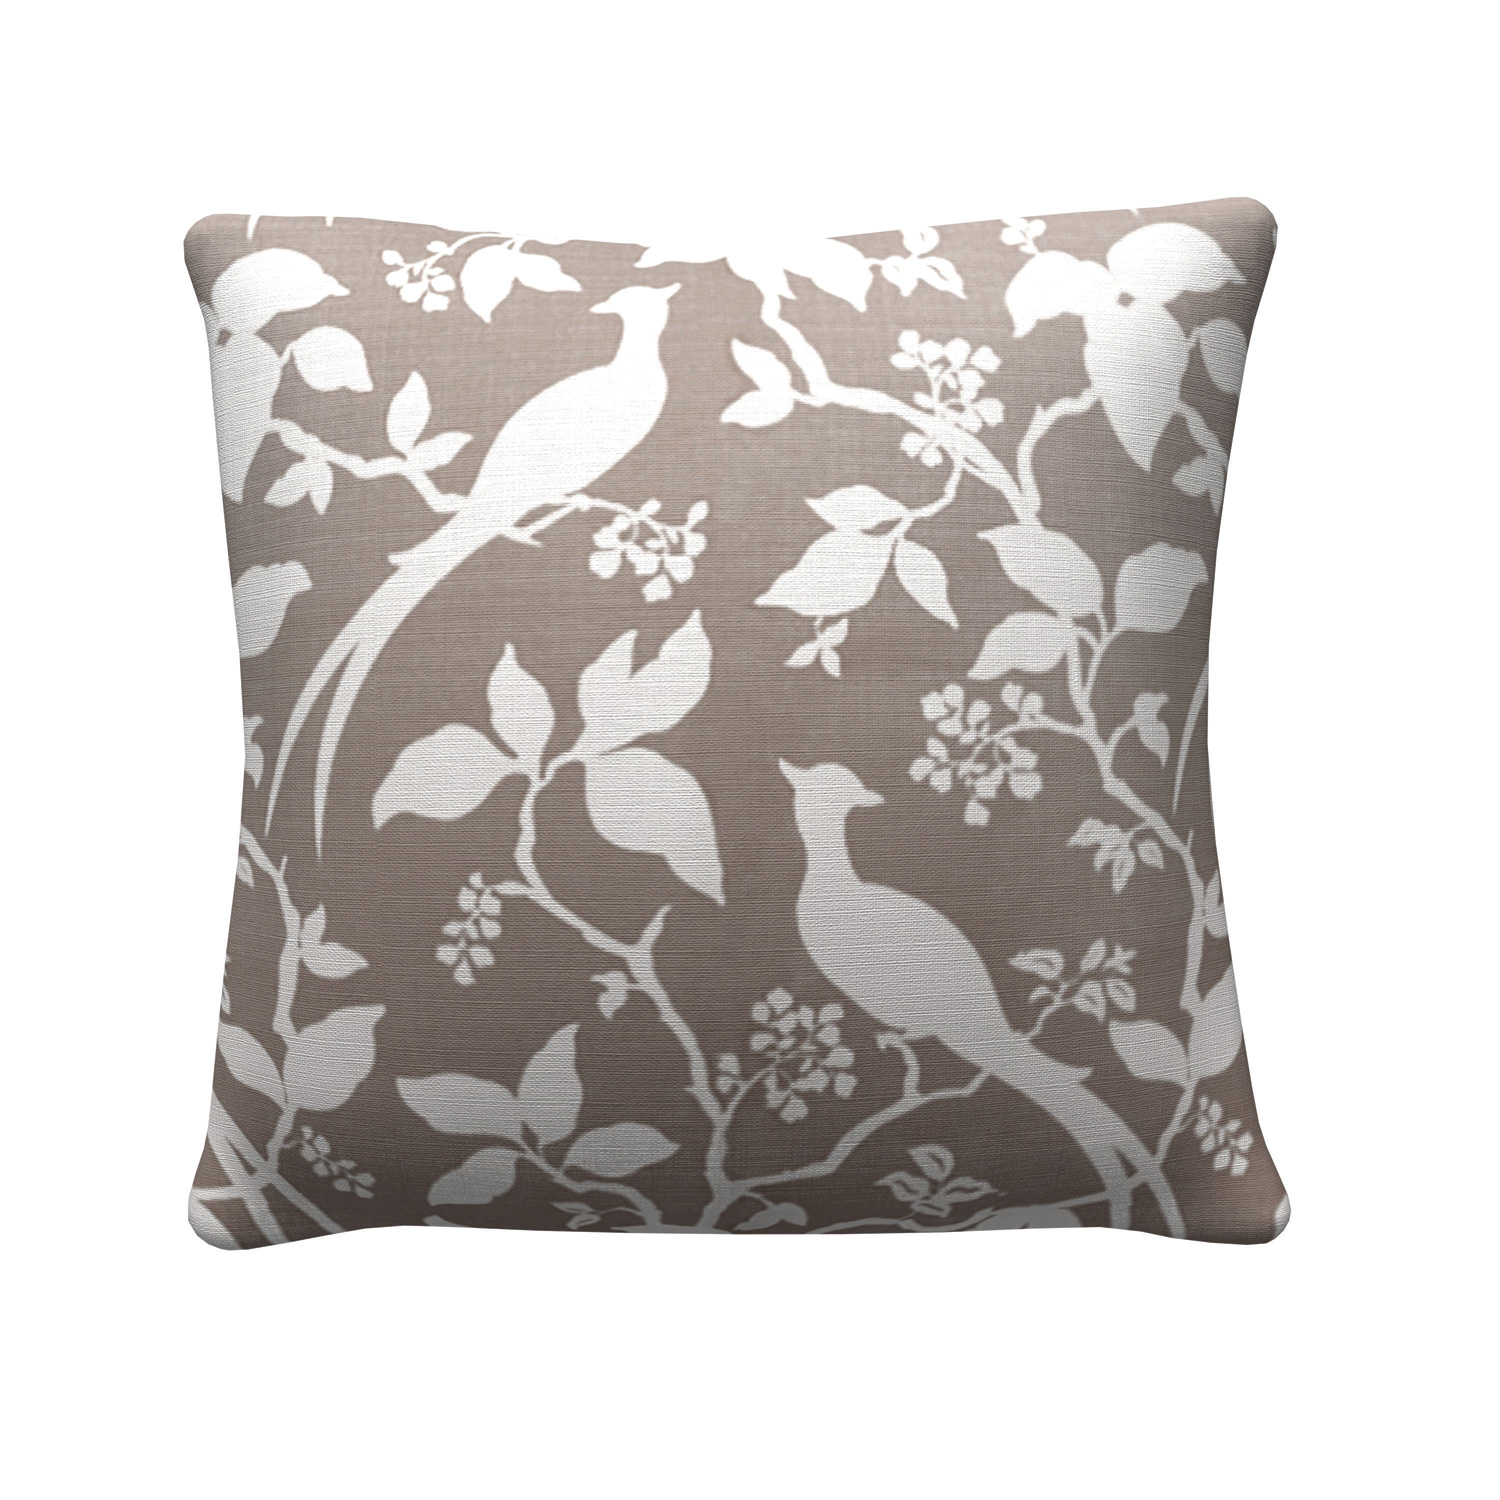 Coaster Throw Pillows Pillow - Item Number: 905317